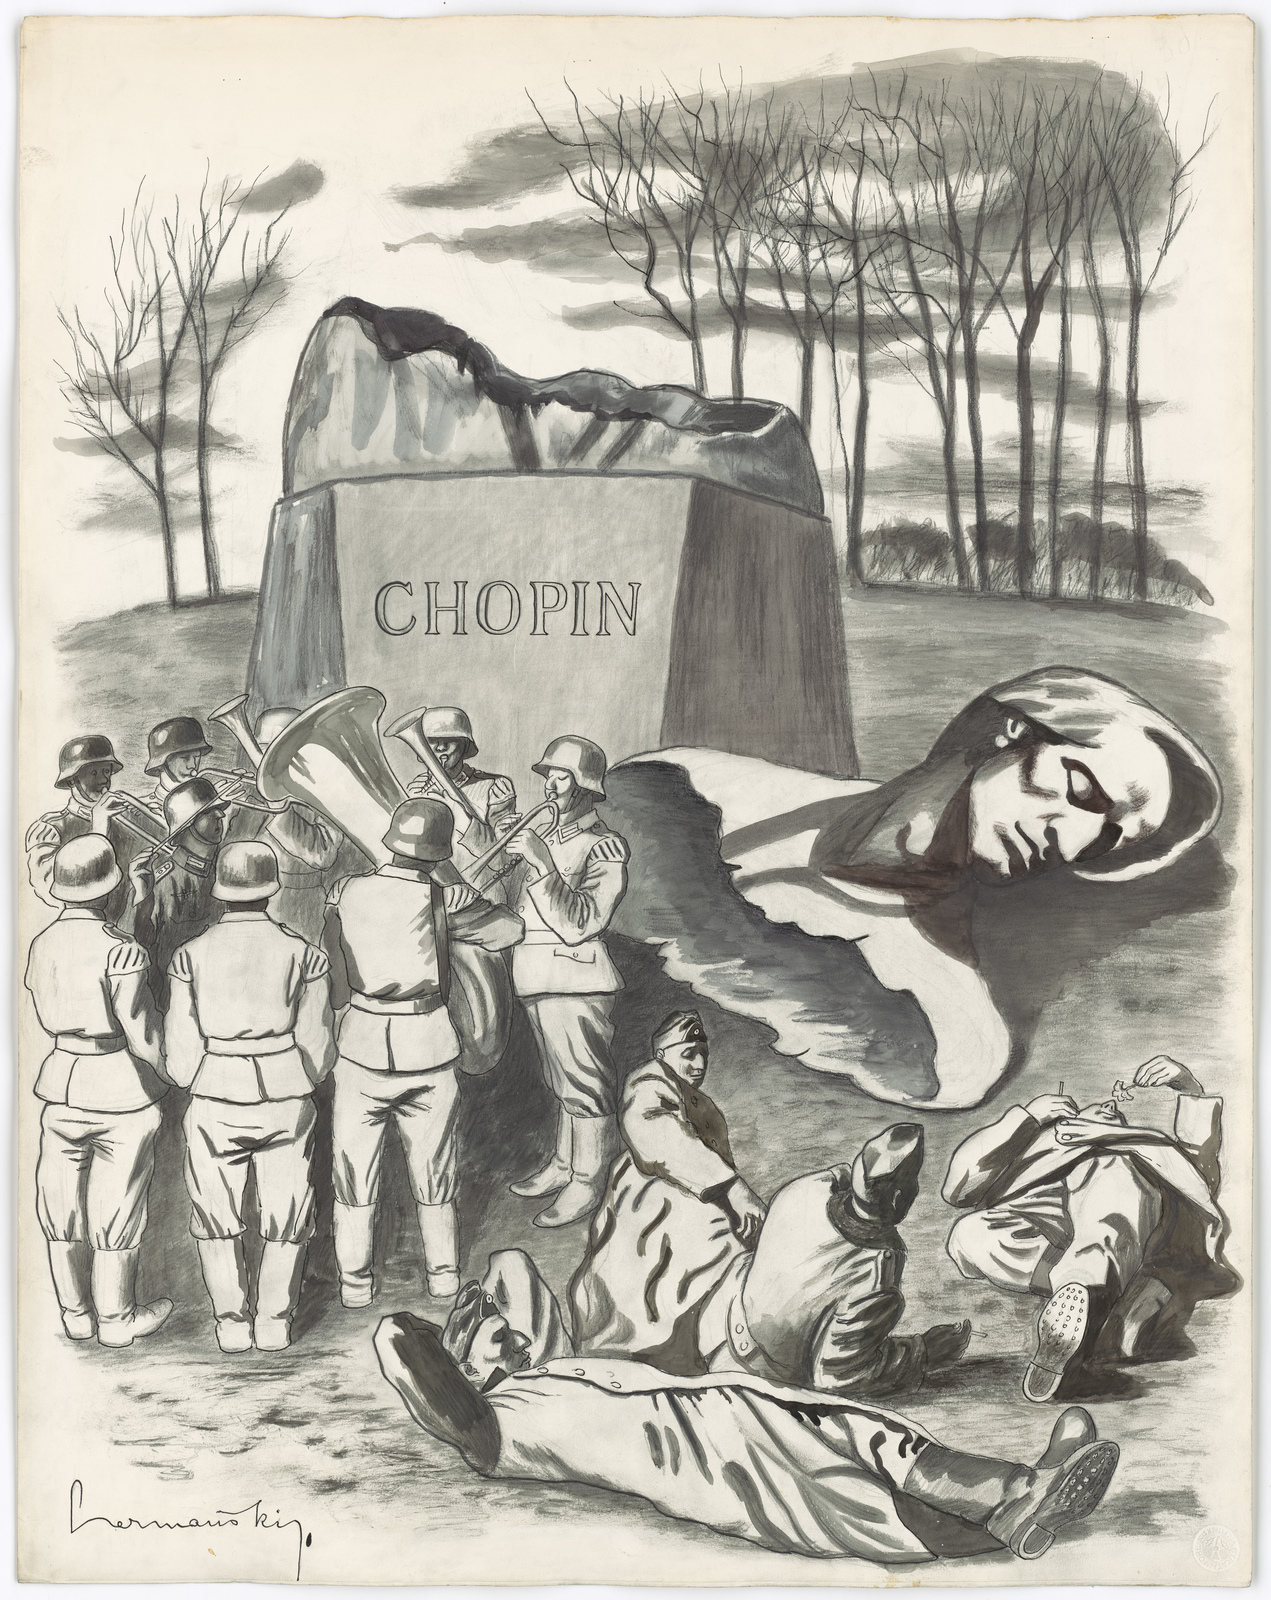 [German military band playing music in front of a statue of Chopin that has had its head taken off.   Other German soldiers are lying in the grass in the foreground.] [Hermansky]